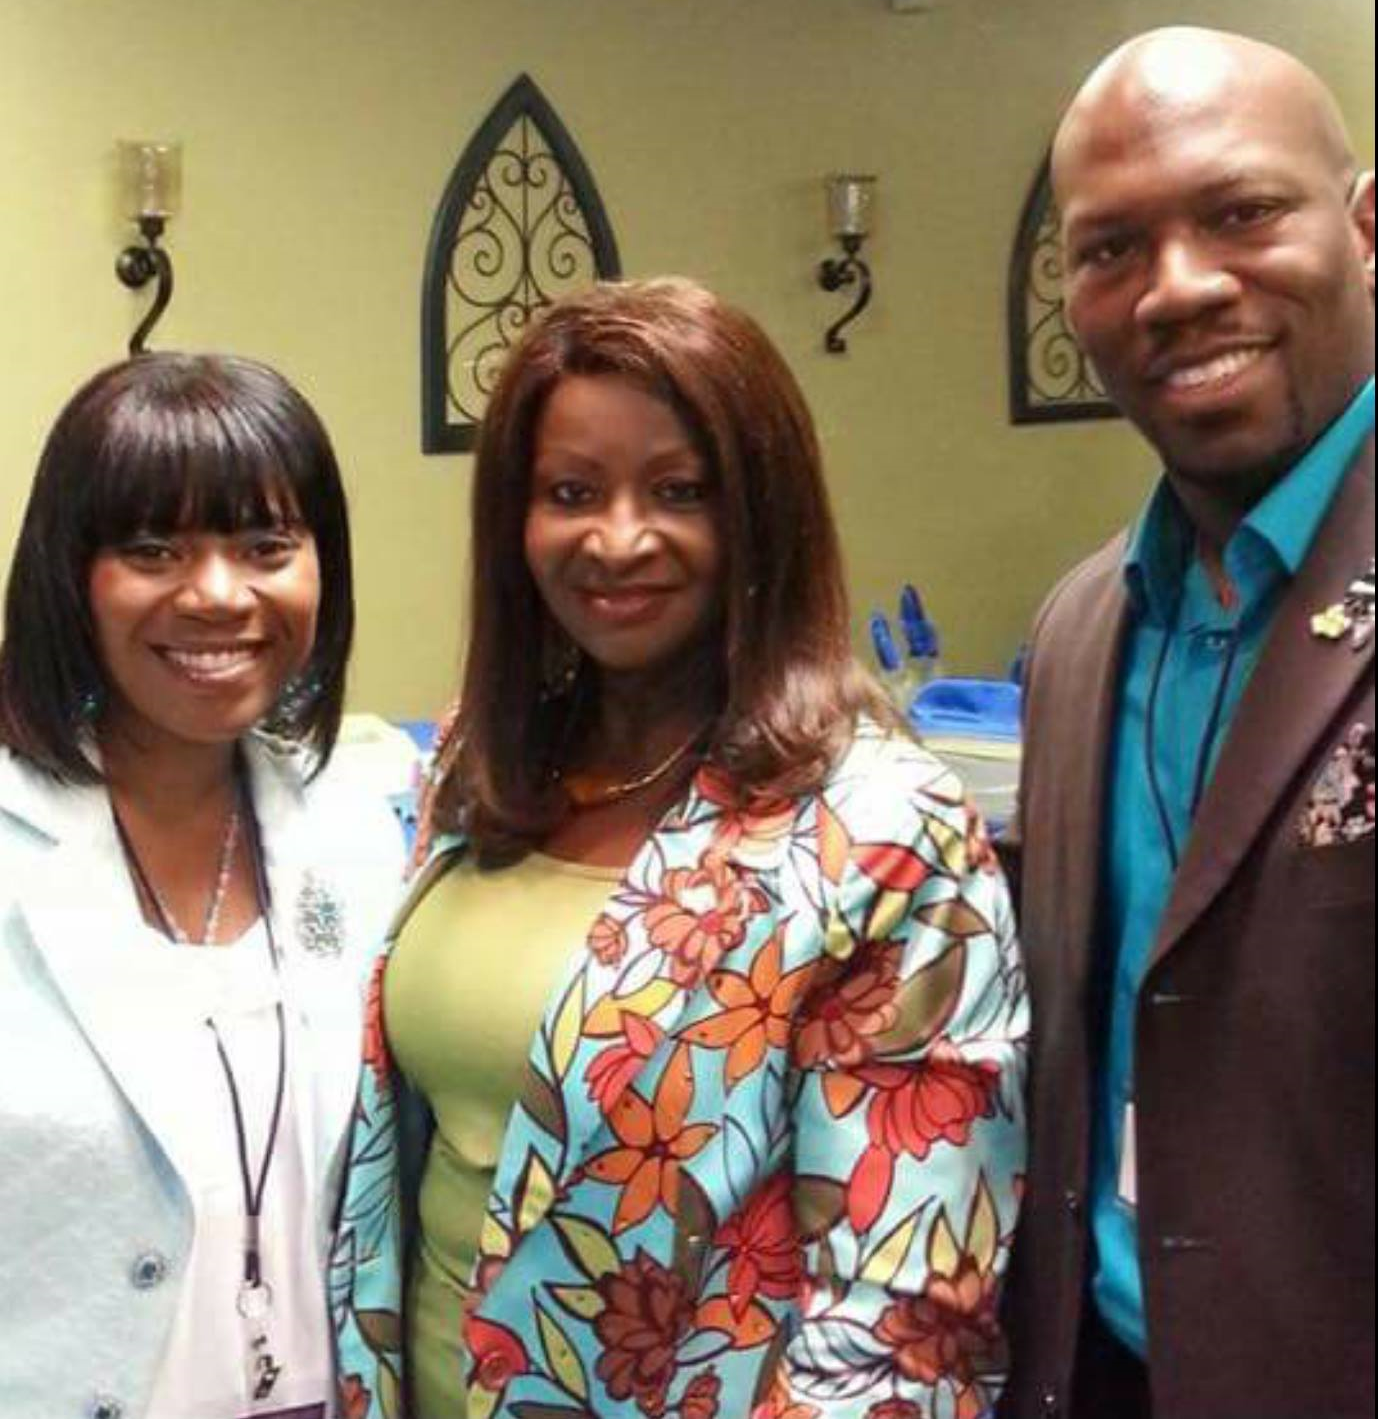 The late Mother Ruth Munroe's Legacy will continue as Drs. Adrian and Crystal Singleton passionately teach The Power and Purpose of Women.